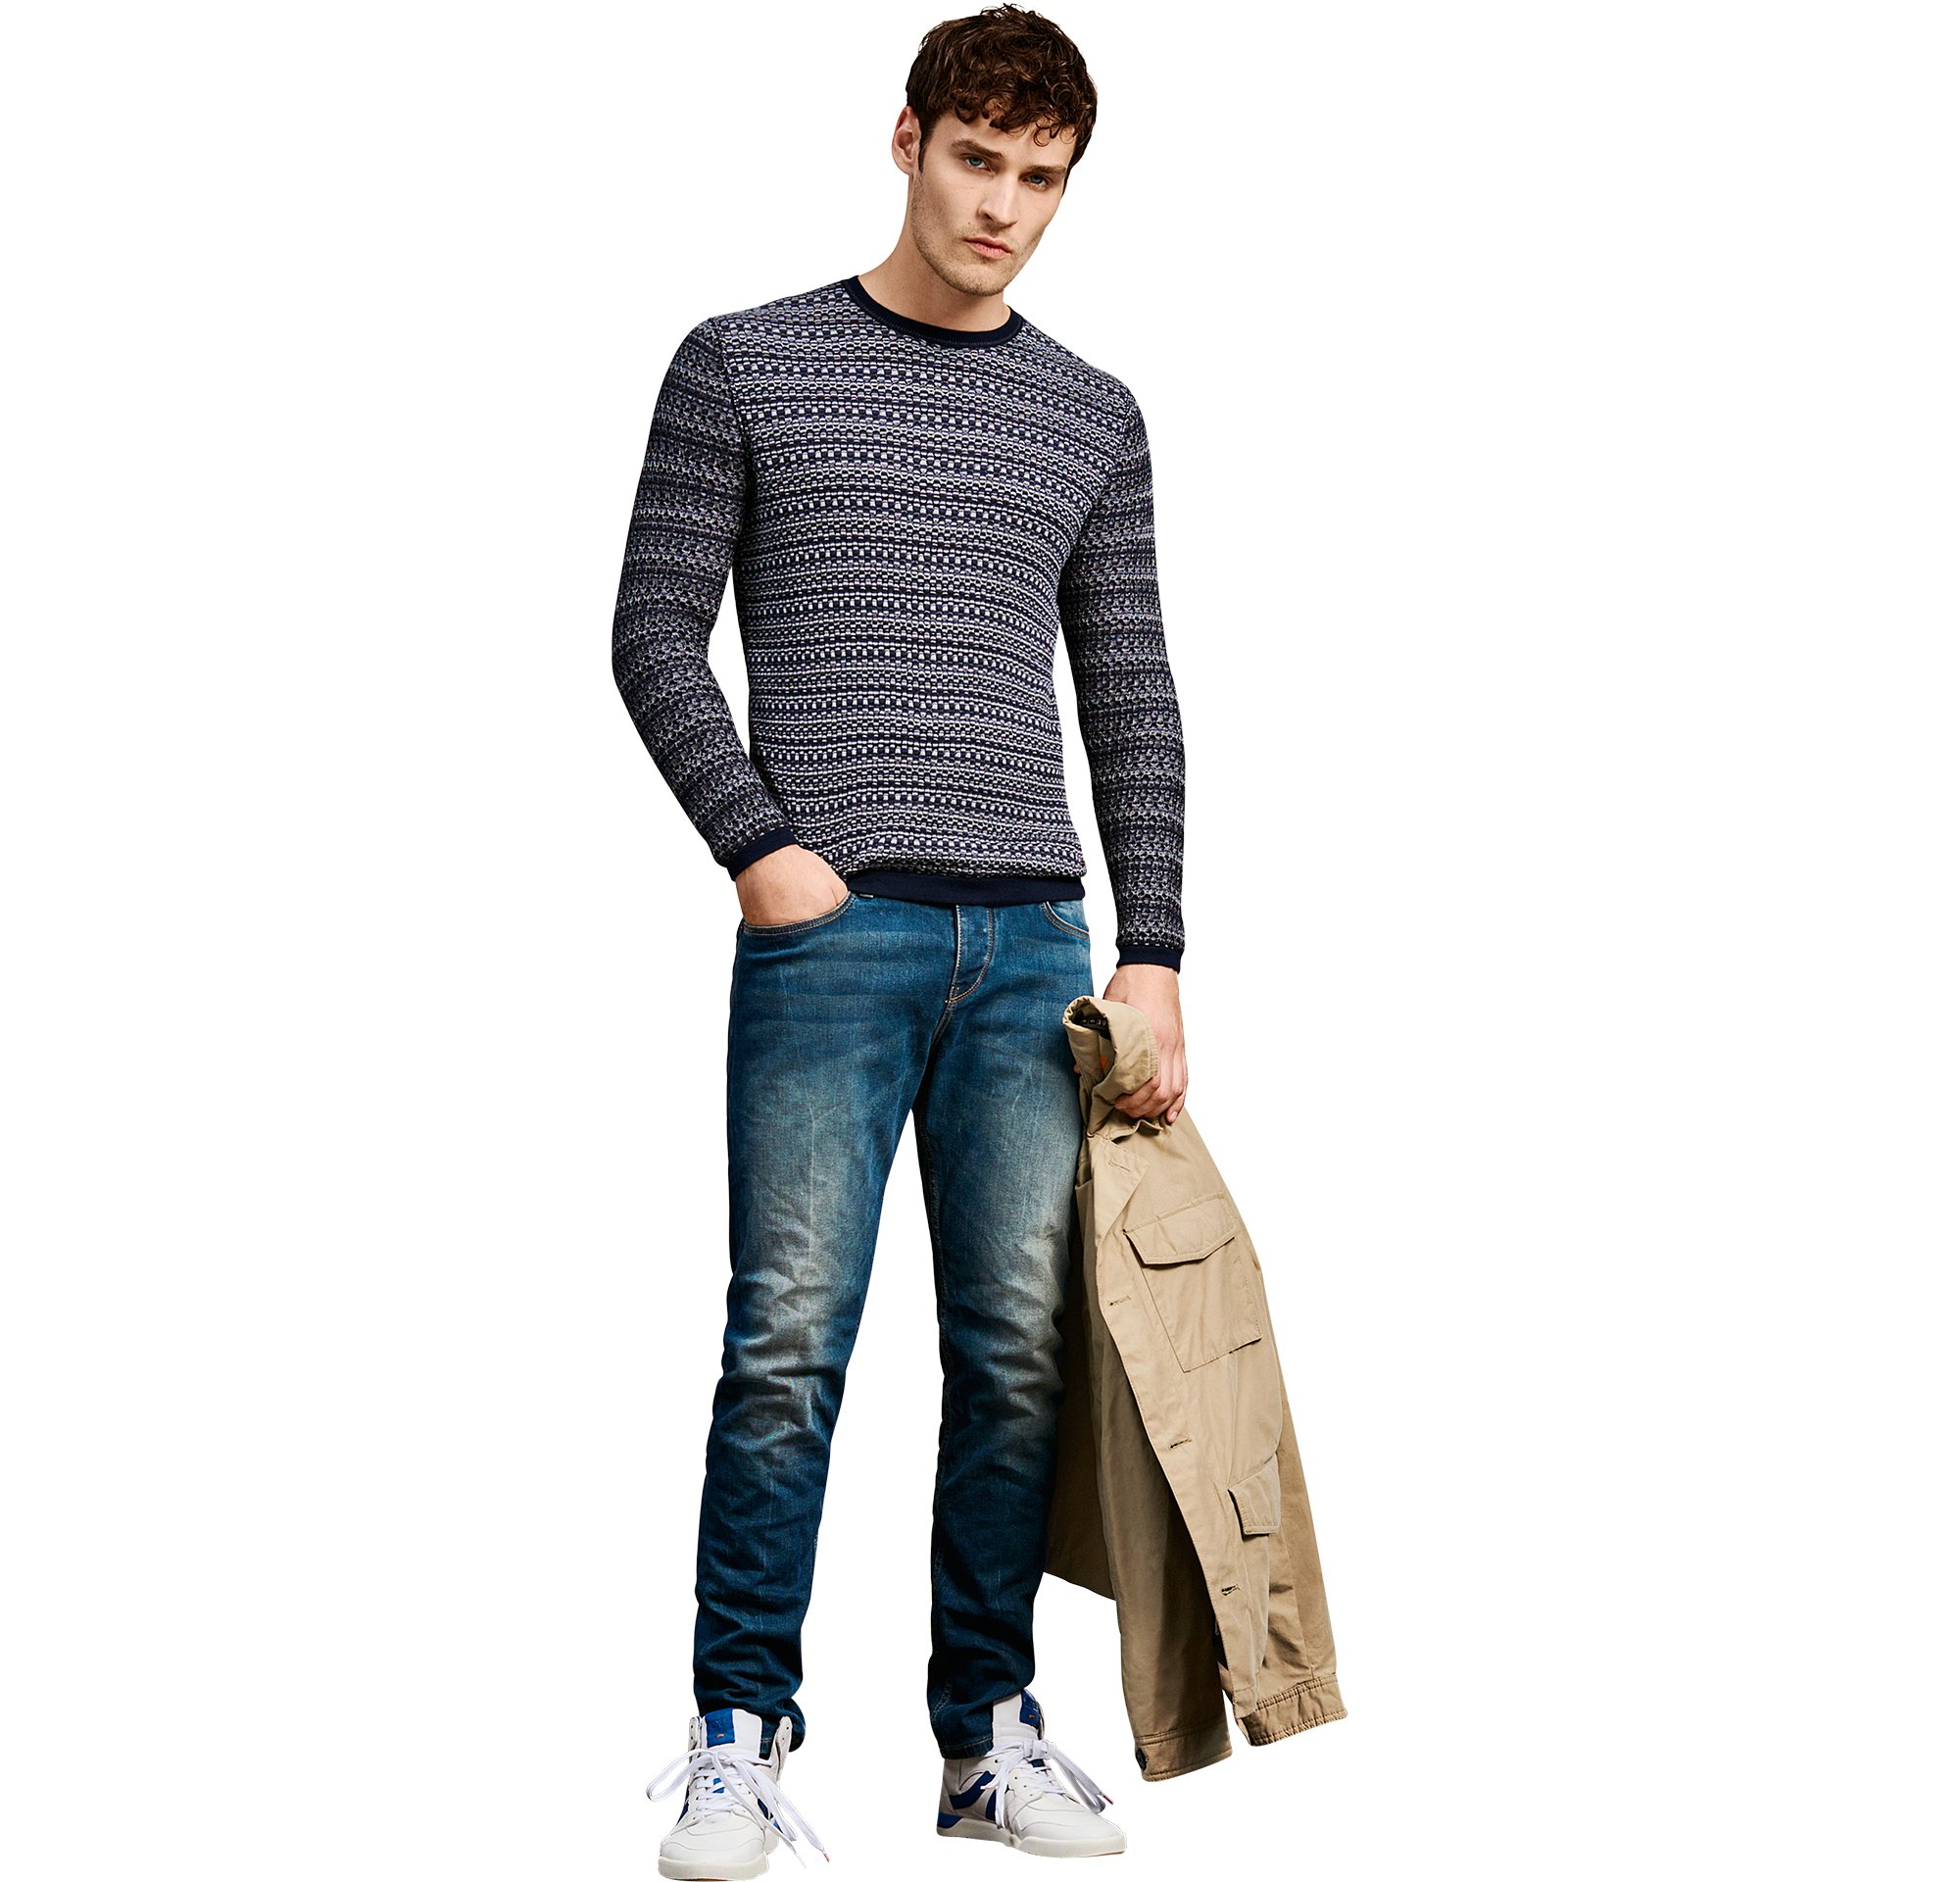 Naturfarbene Outerwear, Strick und Jeans von BOSS Orange